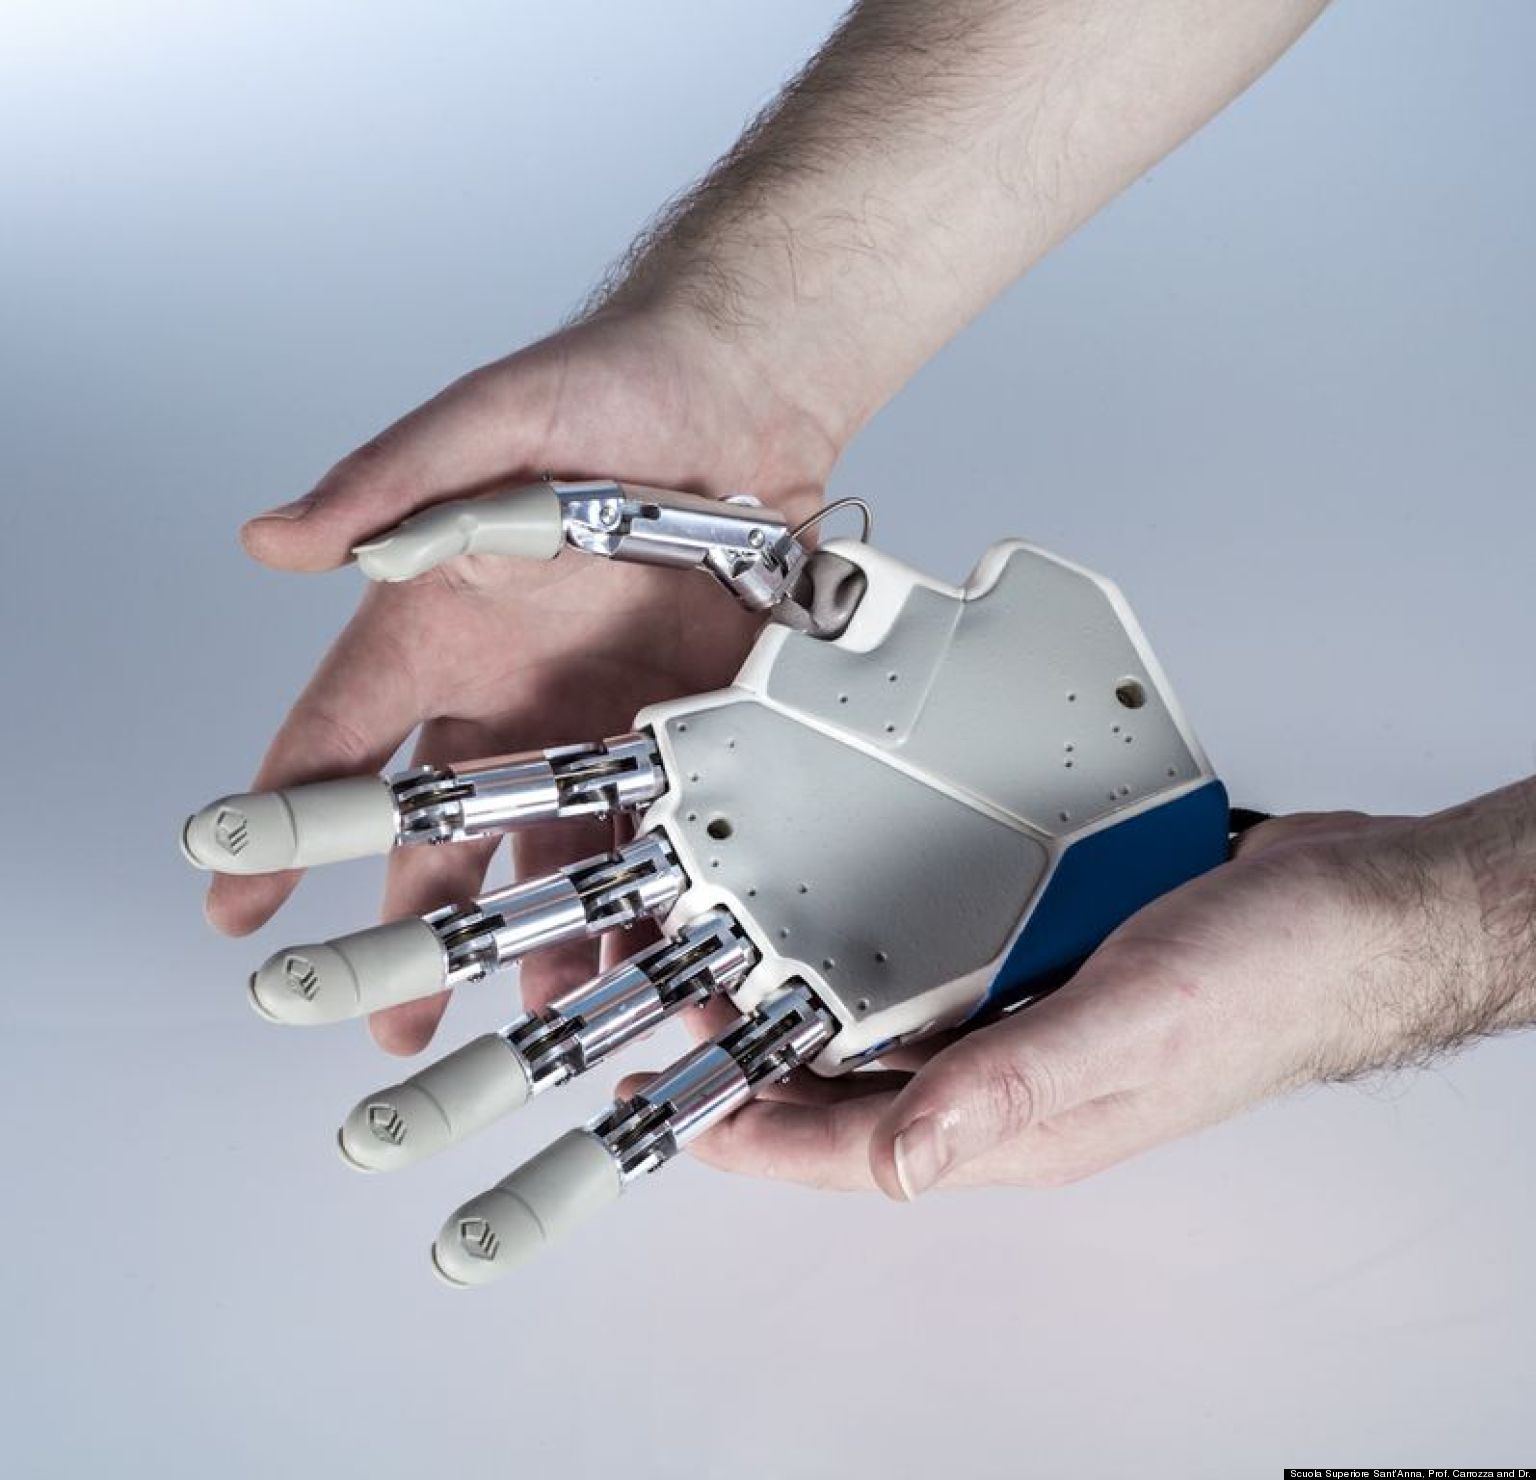 New Bionic Hand Prosthesis Called First To Give Amputees